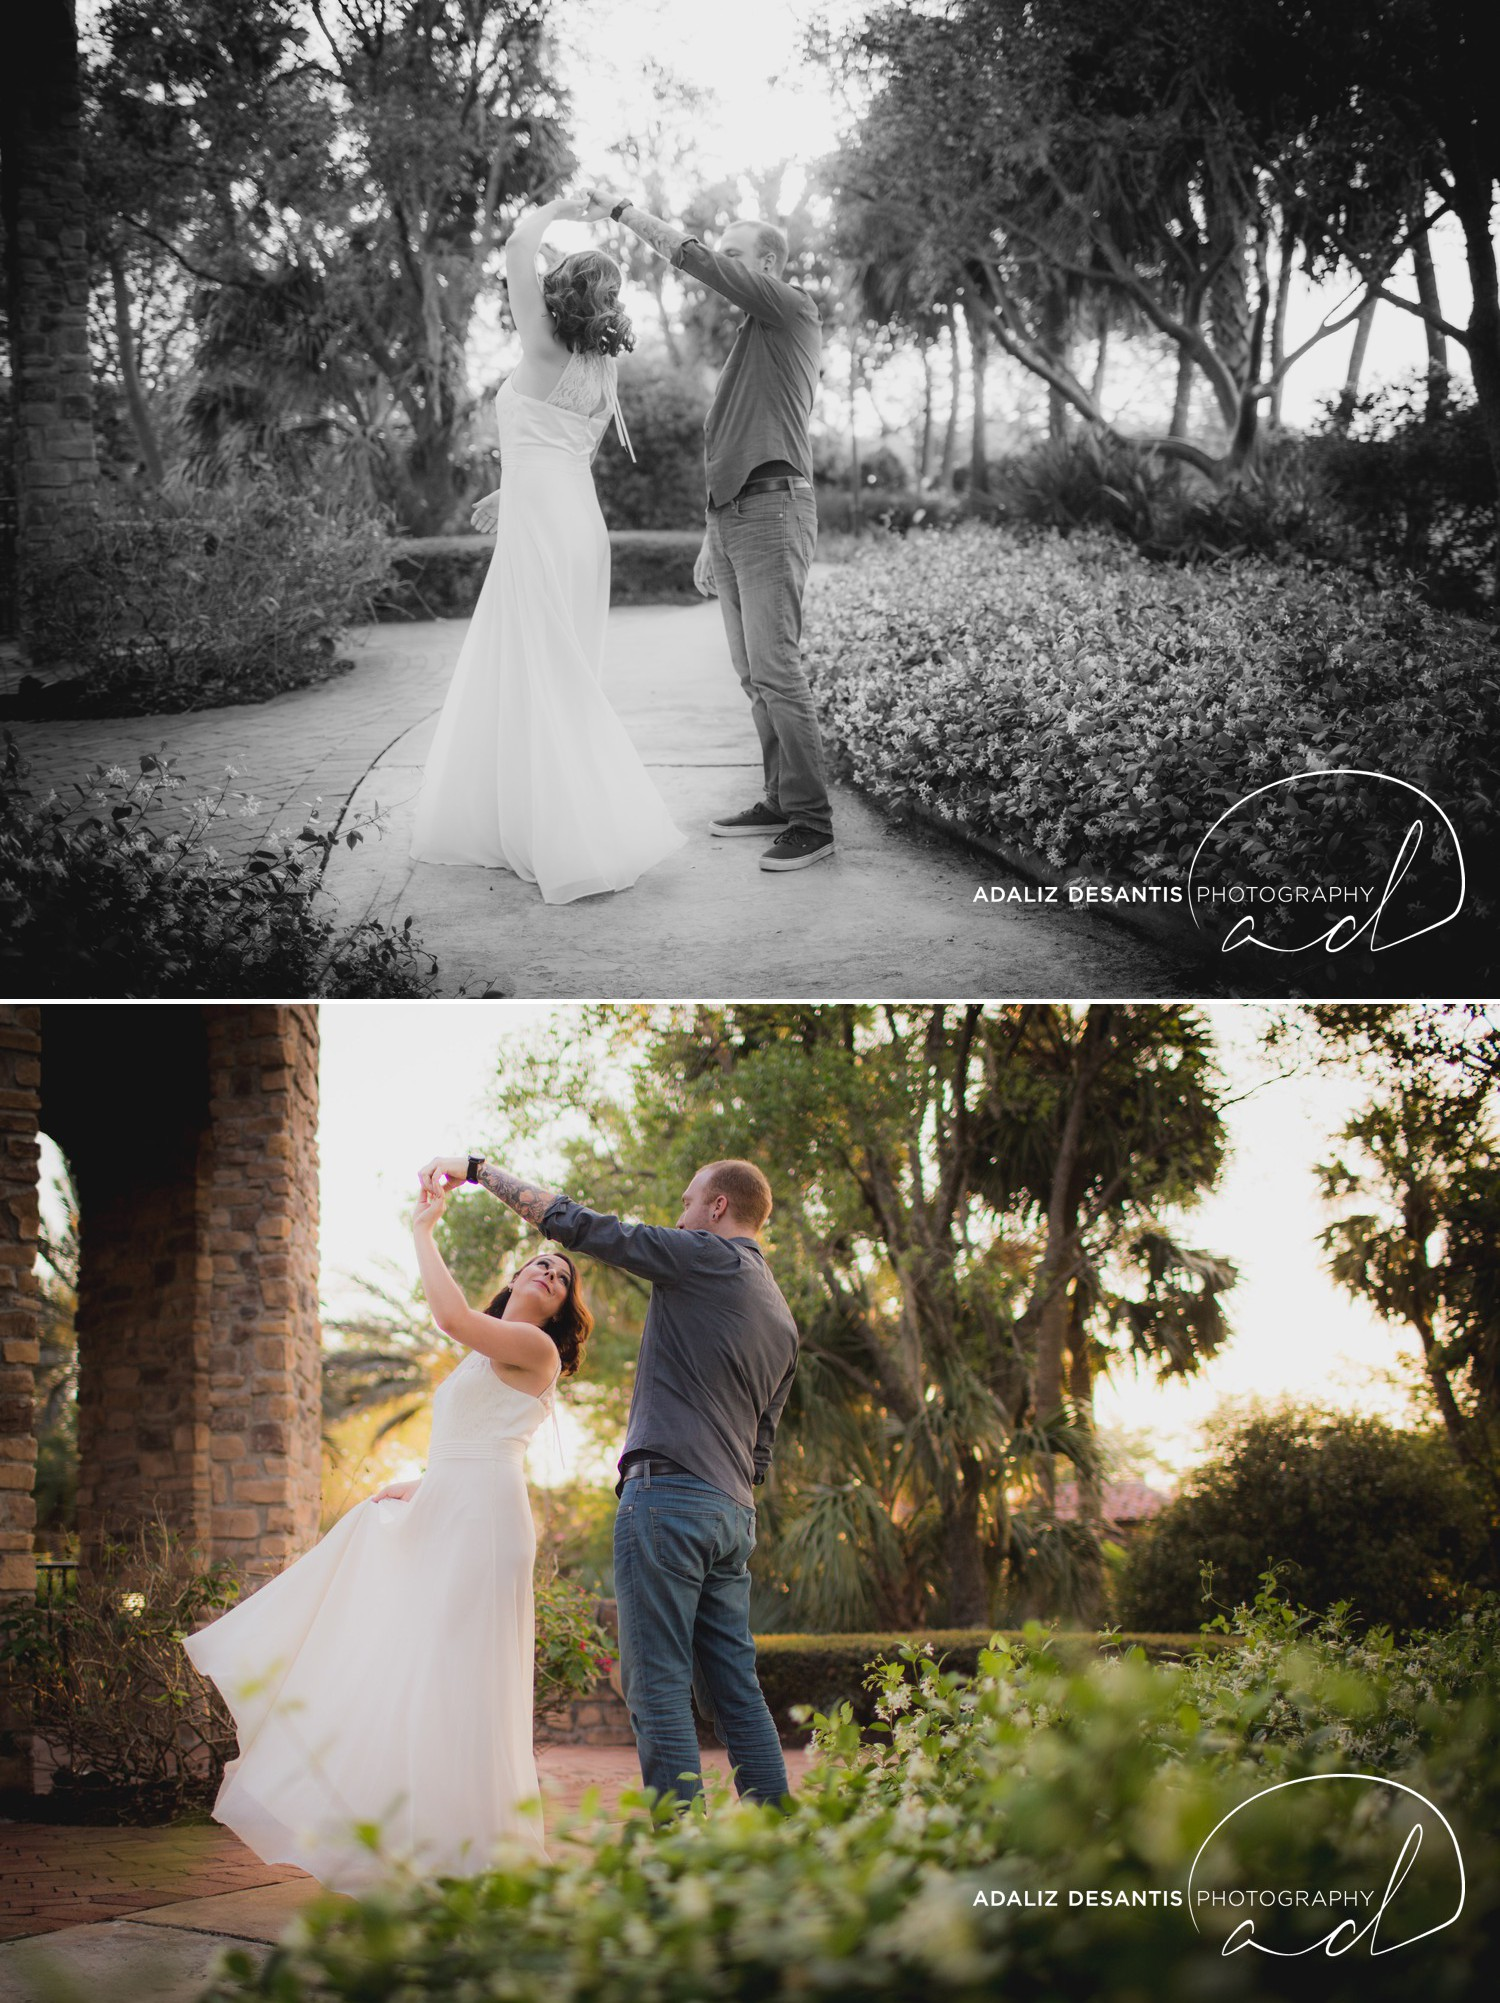 parkland golf and country club engagement session fort lauderdale south flrida 11.jpg